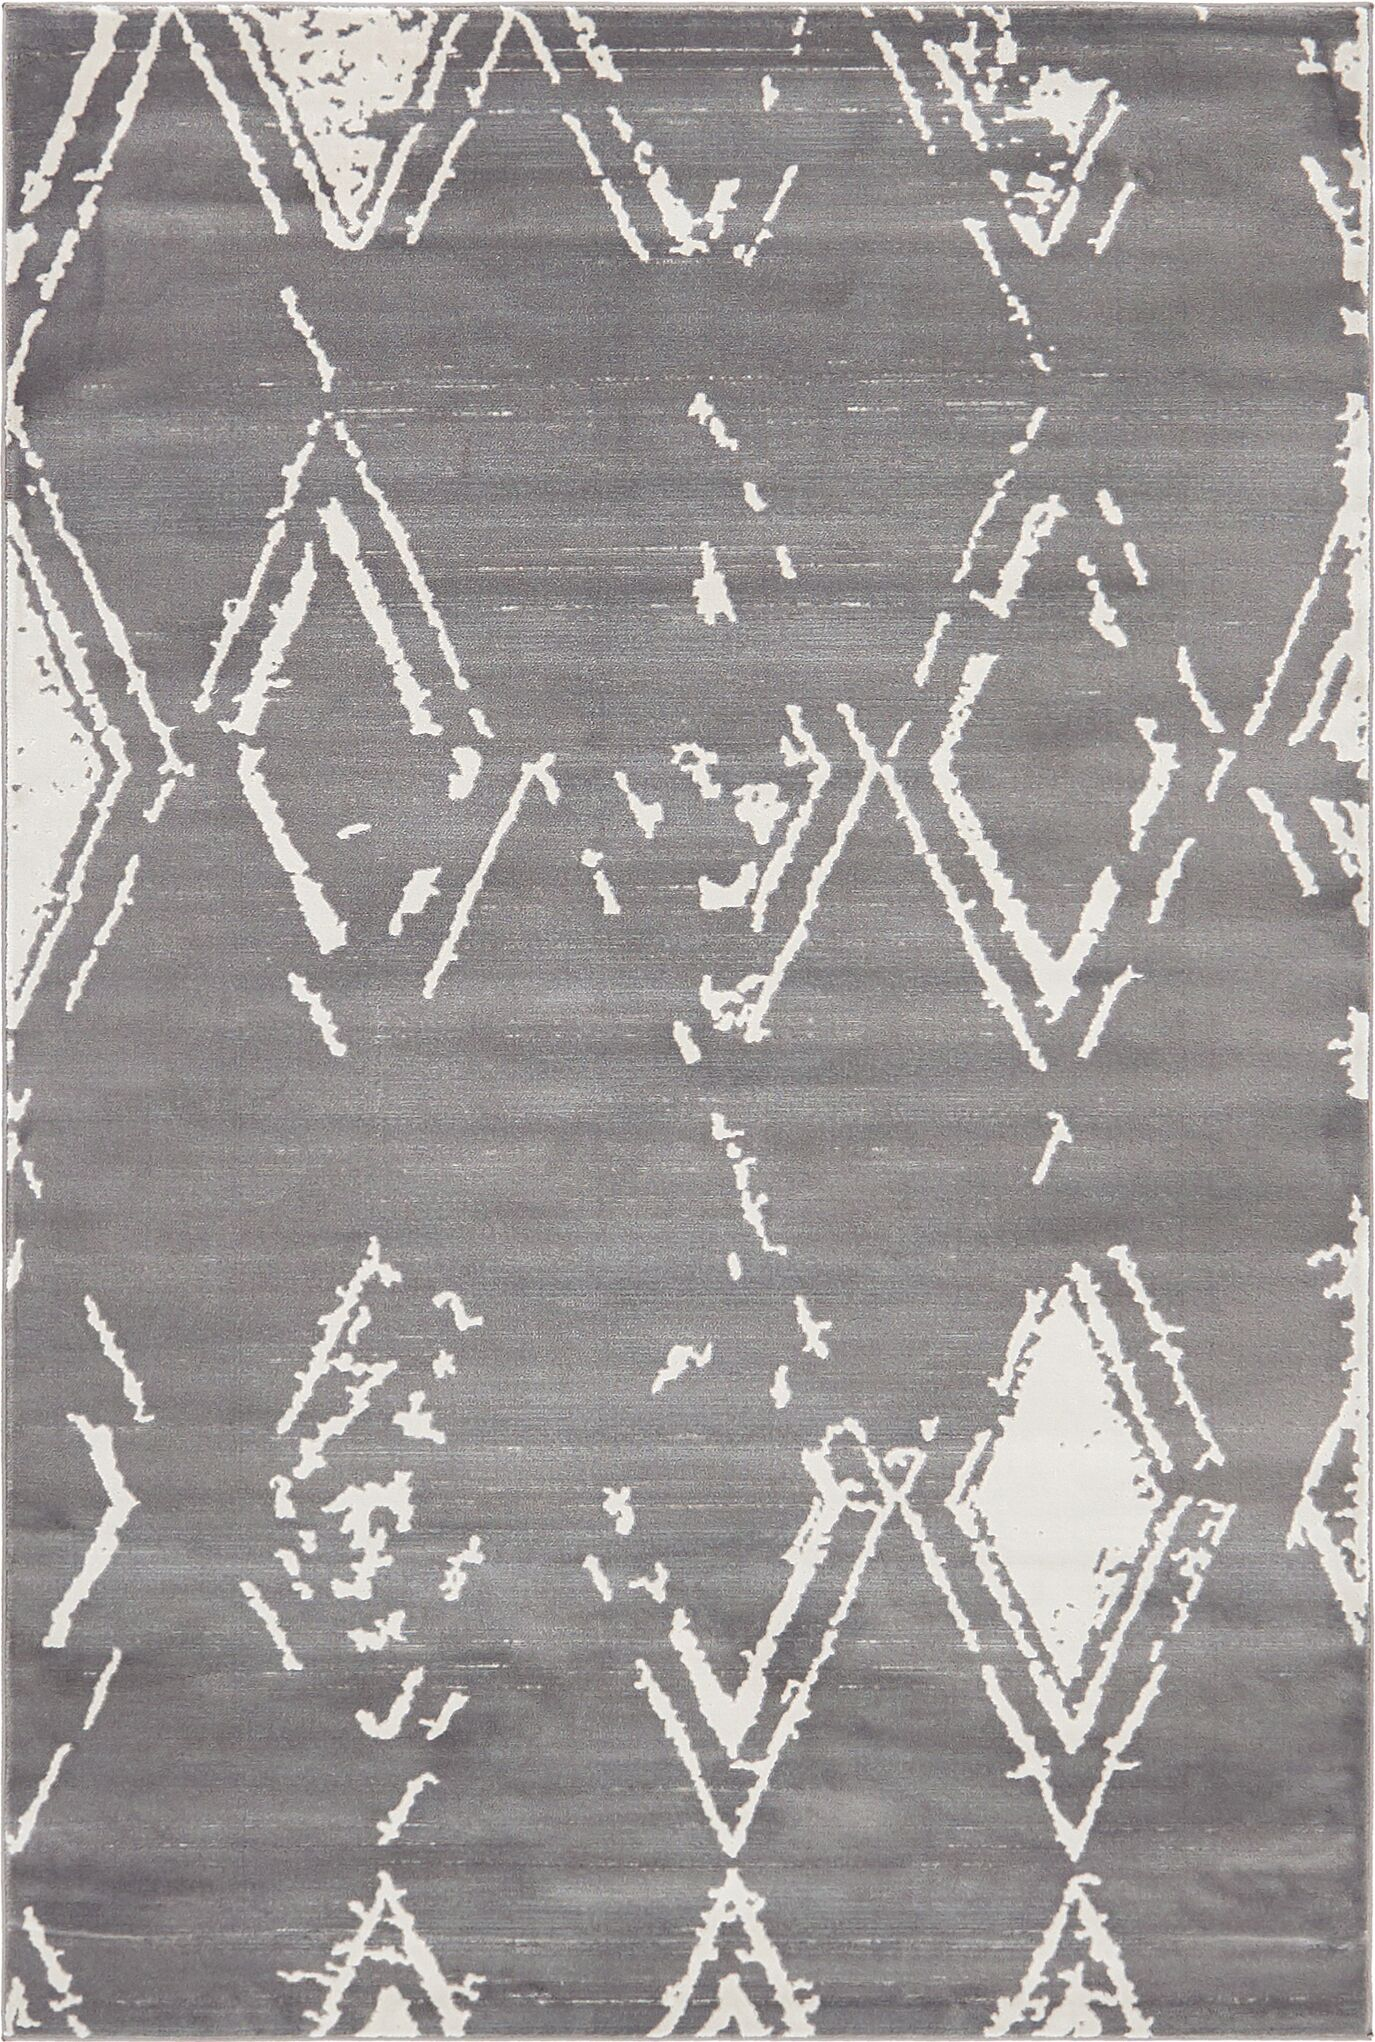 Uptown Carnegie Hill Gray Area Rug Rug Size: Rectangle 4' x 6'